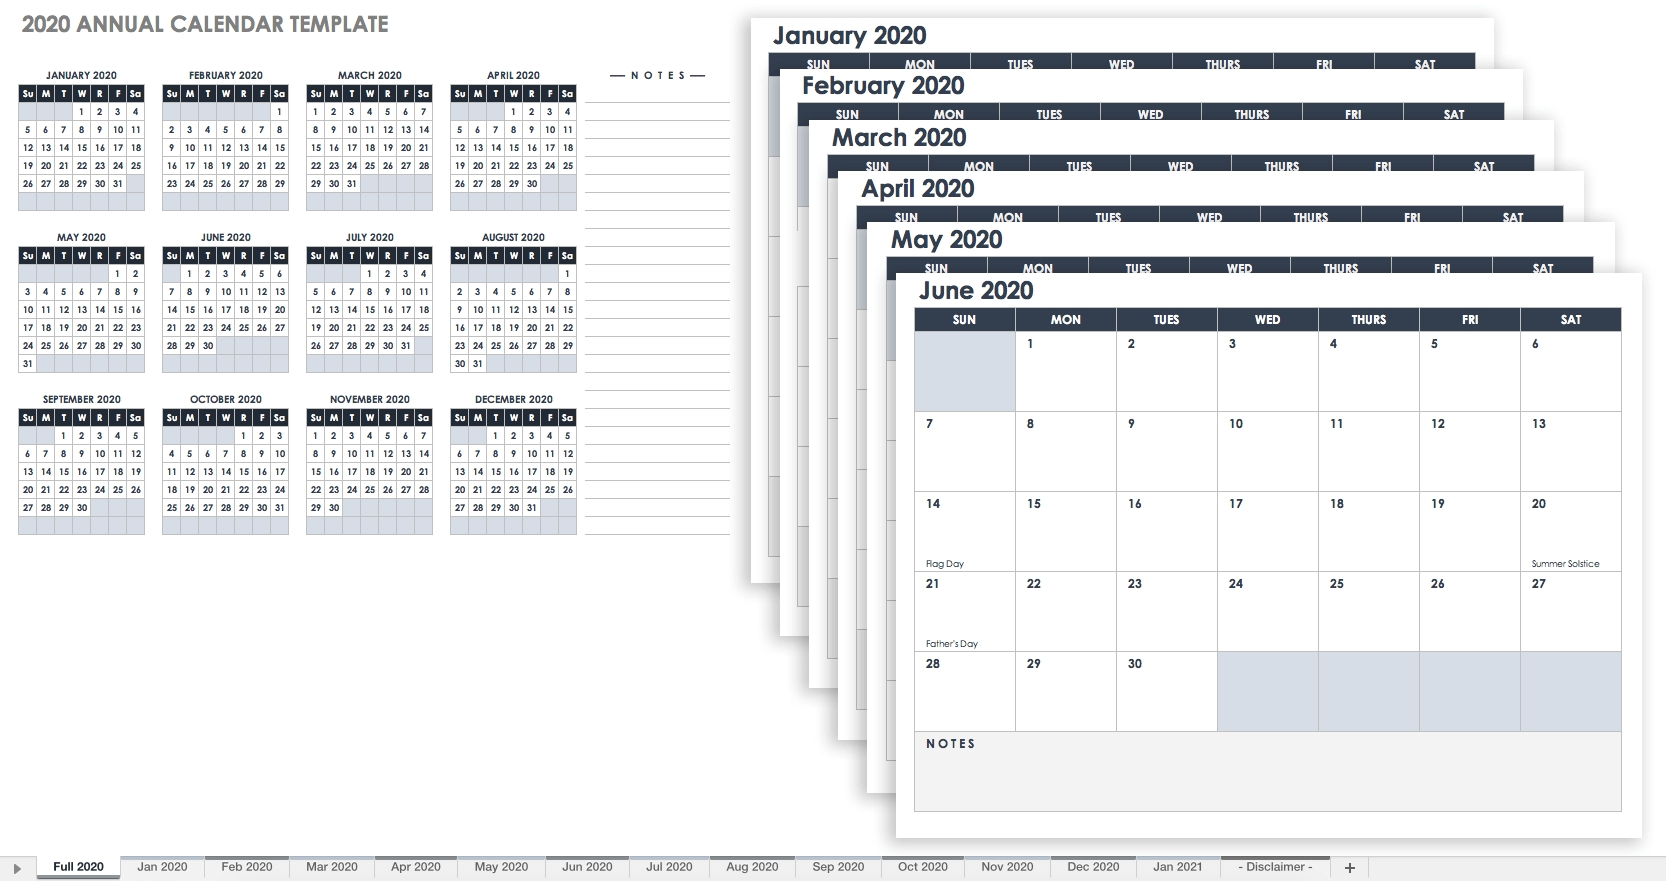 Free Blank Calendar Templates - Smartsheet for 31 Day Month Calendar Printable